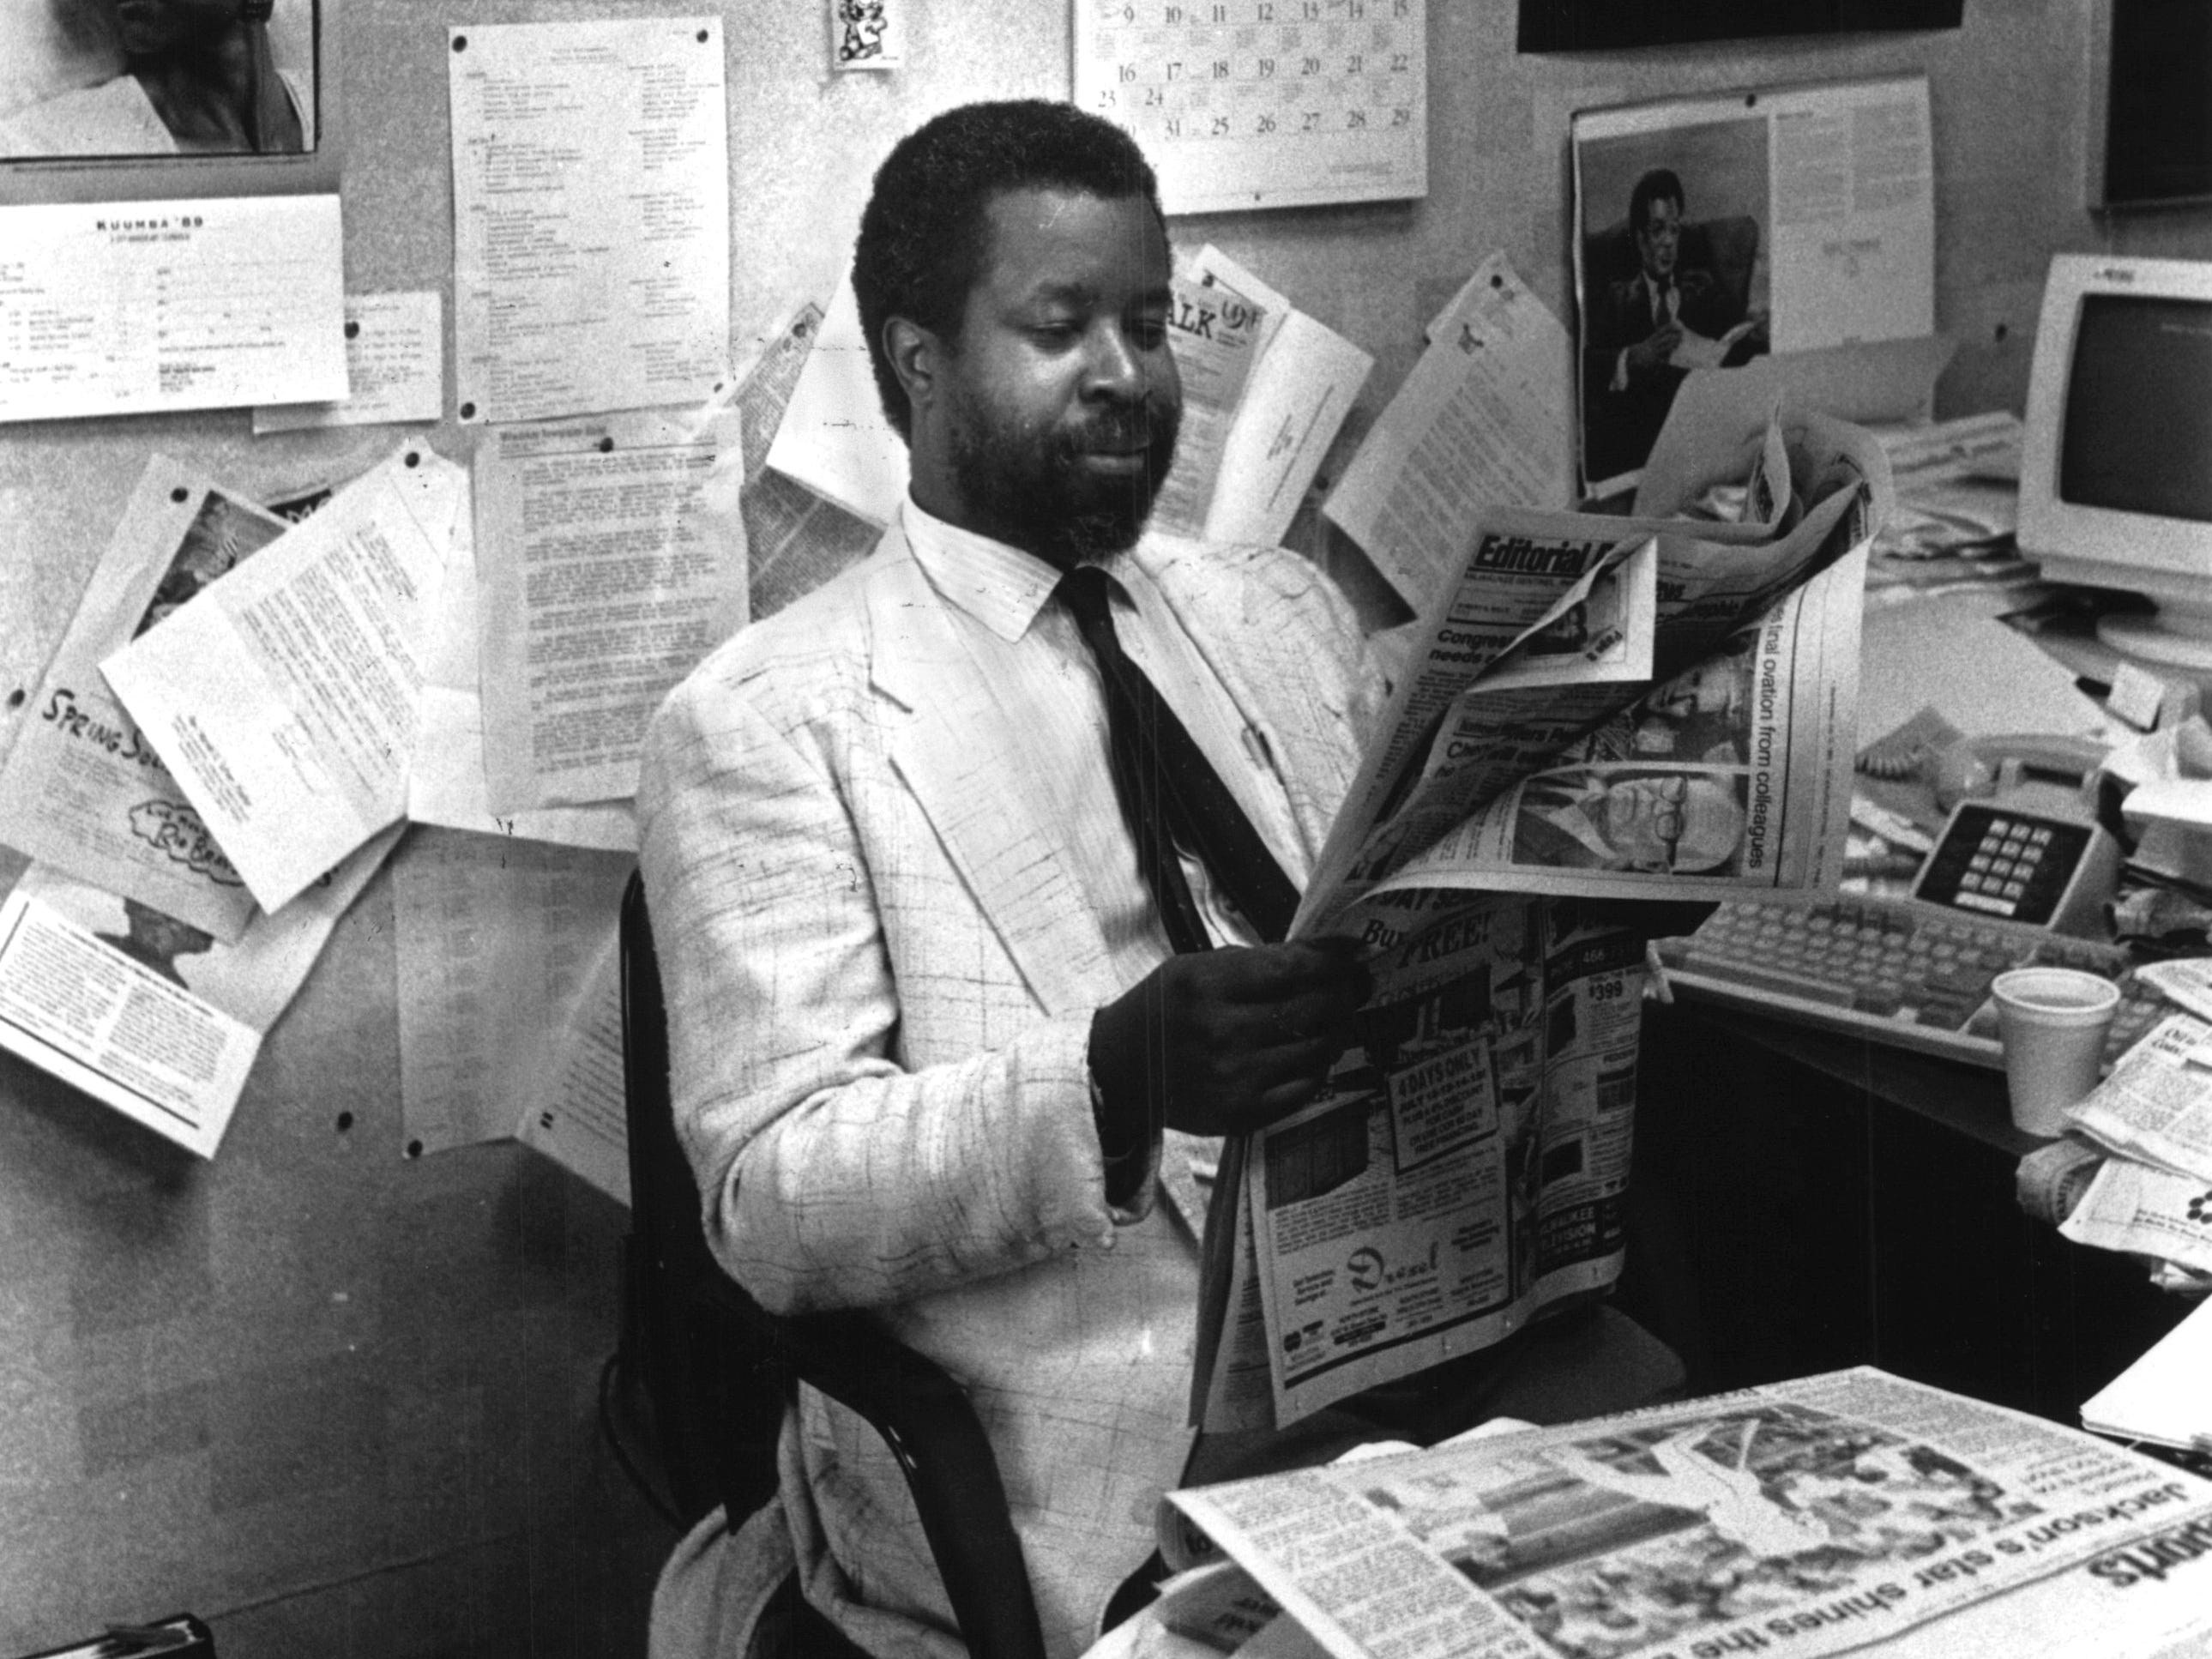 1989: Milwaukee Journal editorial writer Greg Stanford in his office going over the news of the day.